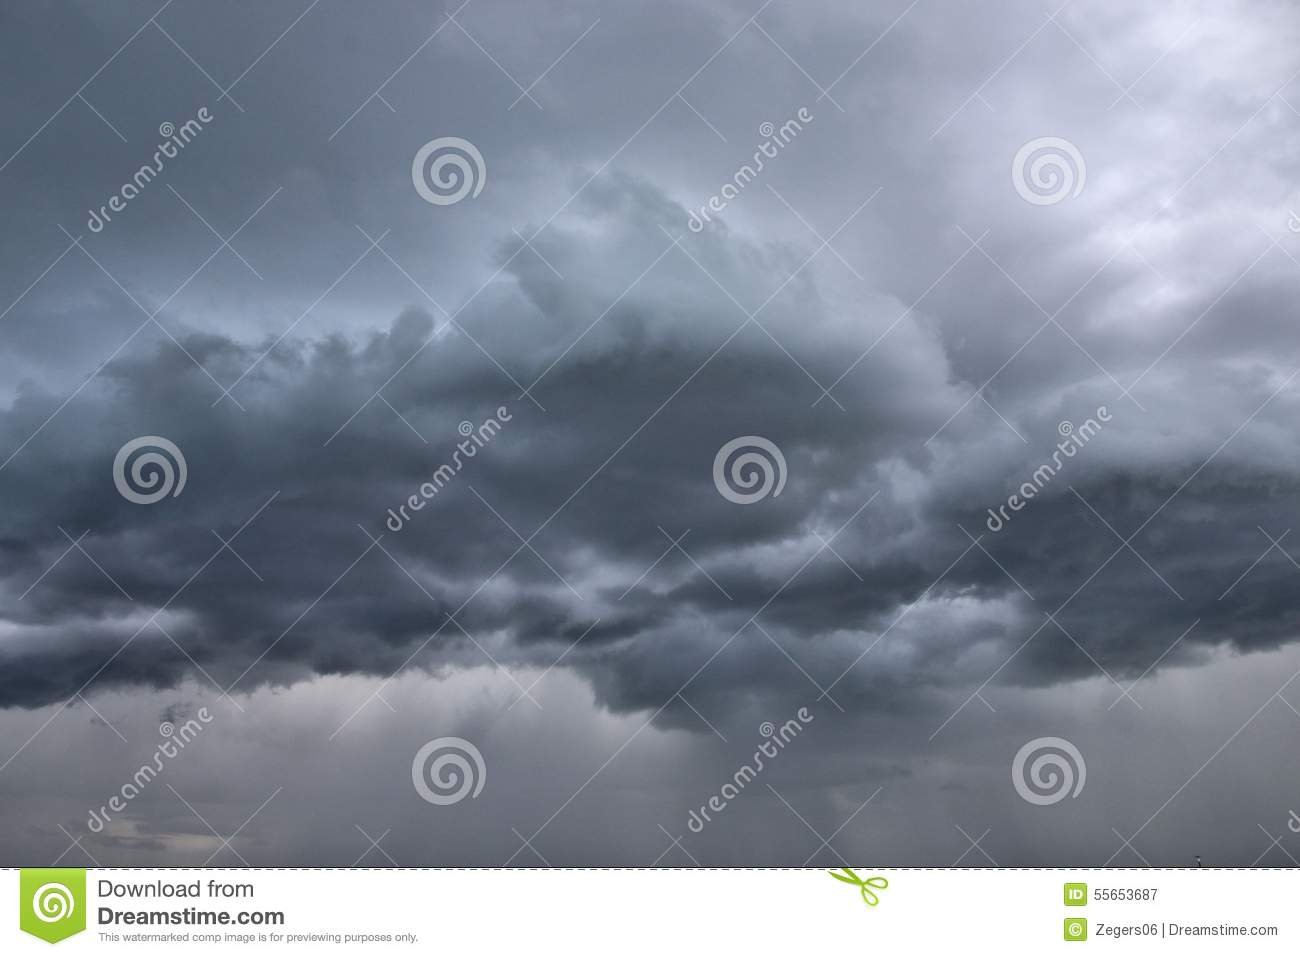 c370d4481 Cloudy sky stock image. Image of moody, background, thunderstorm ...